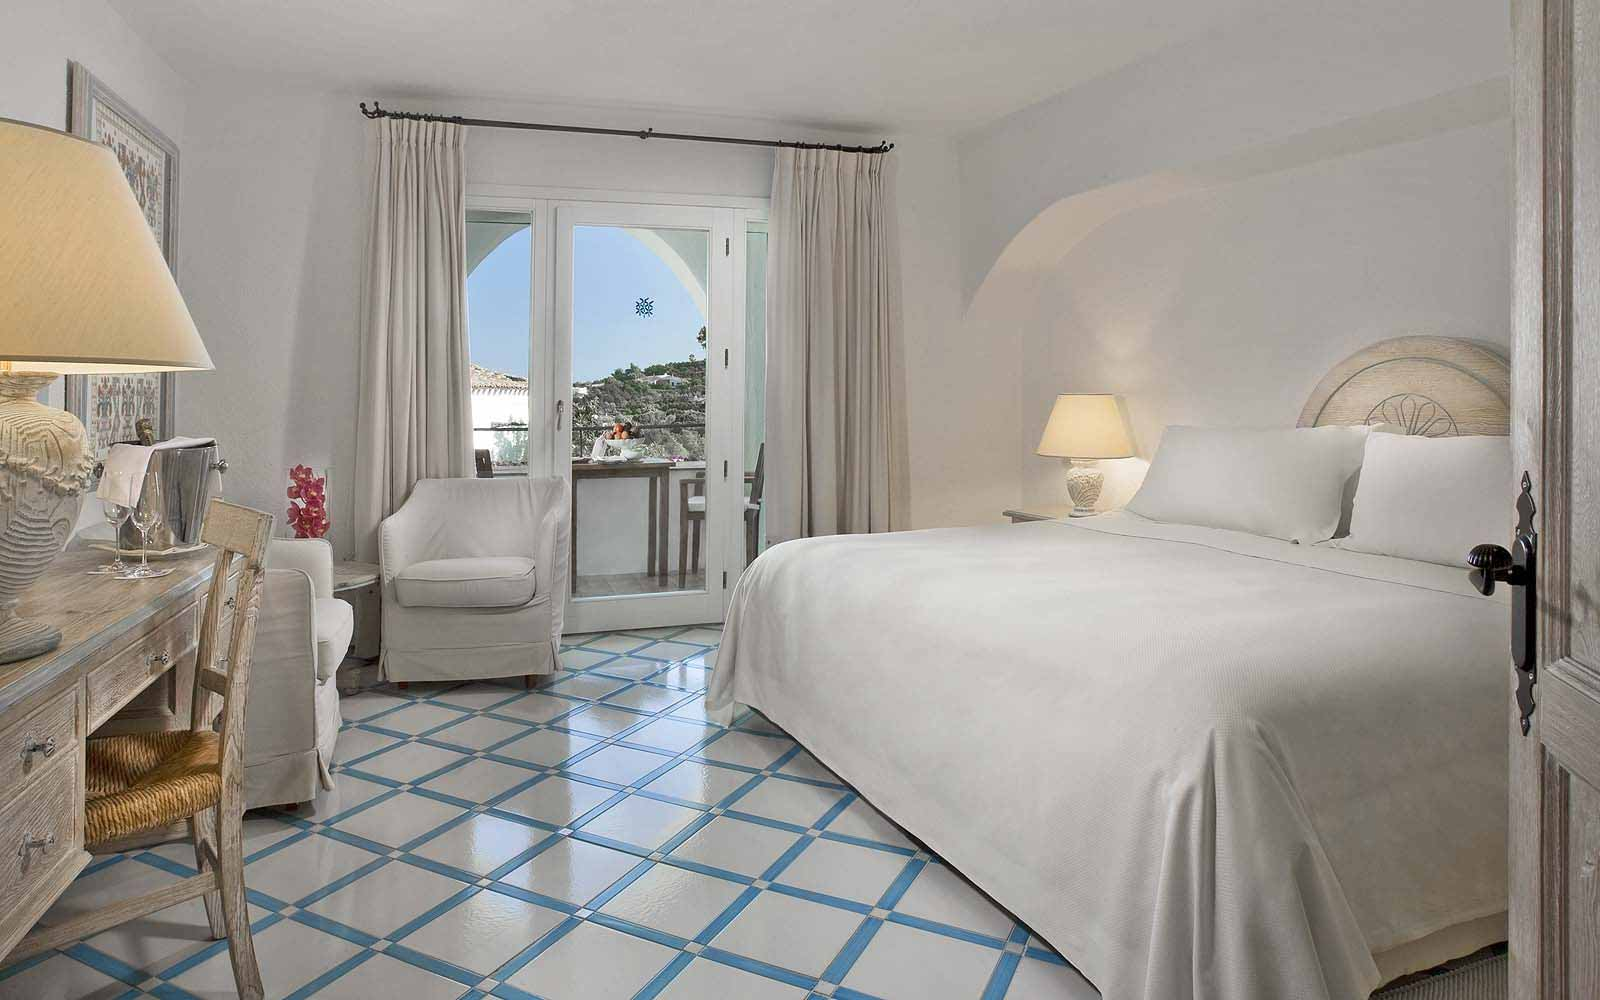 A Classic Room at the Hotel Romazzino